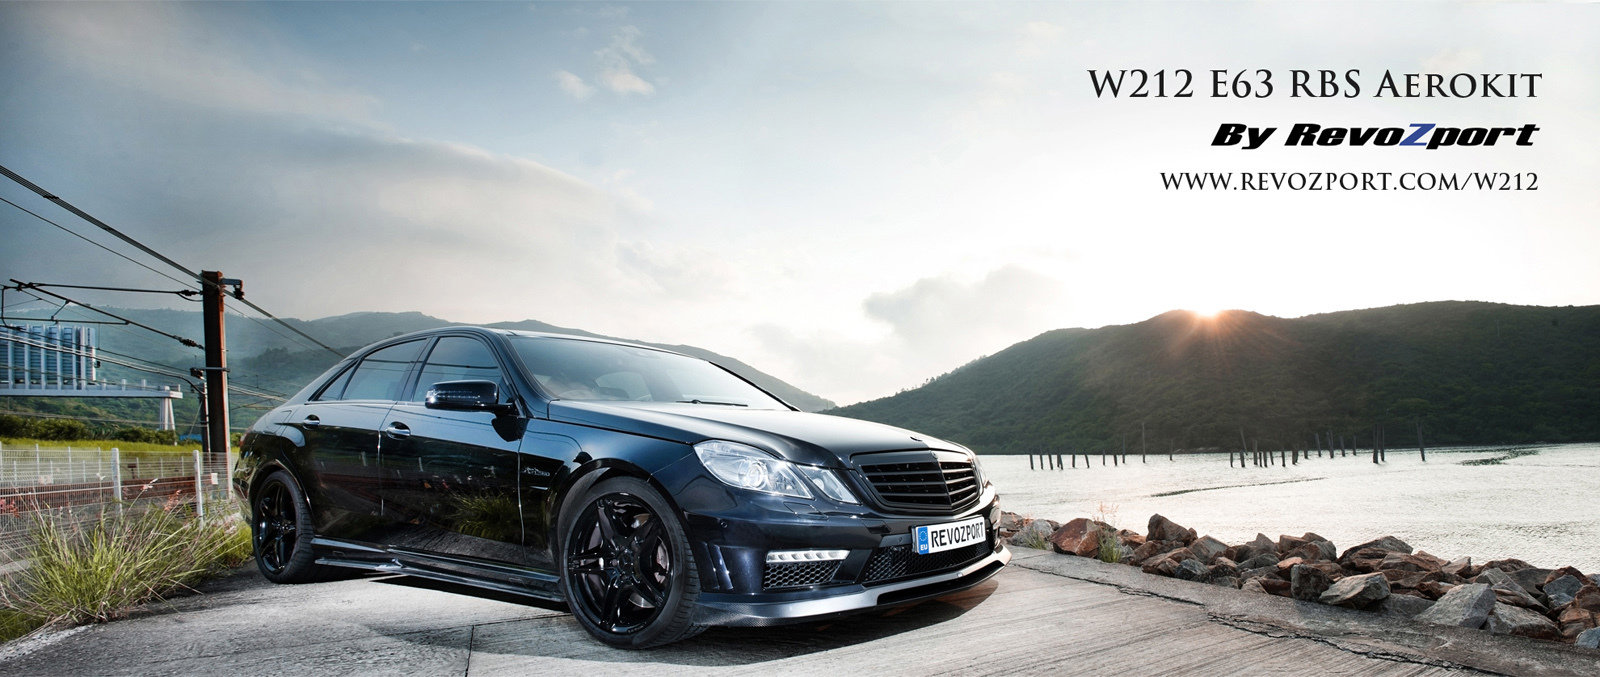 2013 mercedes benz e63 amg by revozport picture 508047 for 2013 mercedes benz e63 amg